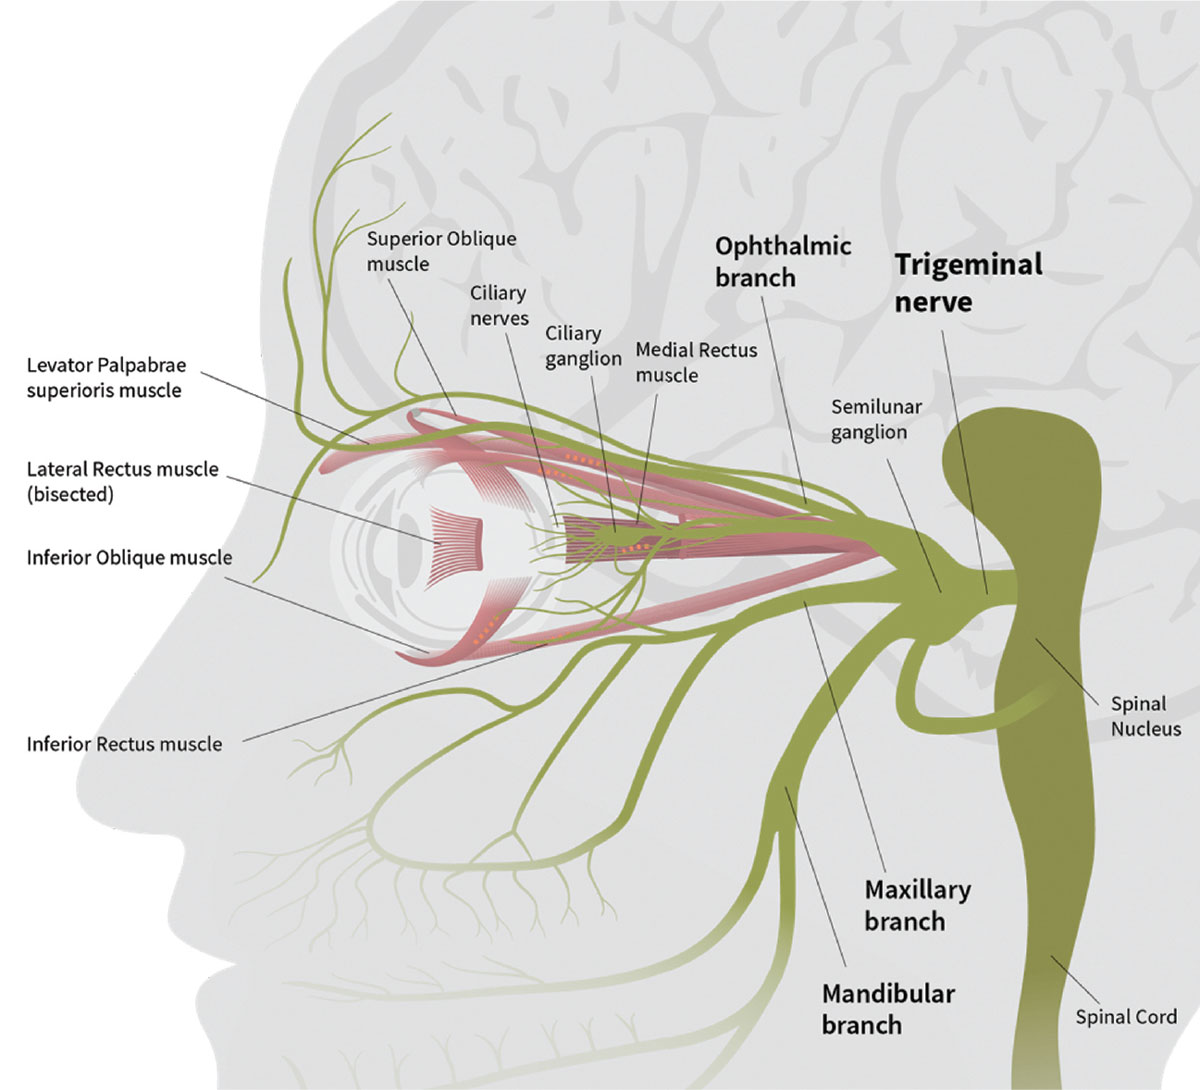 Research now suggests specialized lenses can help patients overcome symptoms of dysfunction of the ophthalmic branch of the trigeminal nerve, trigeminal dysphoria.